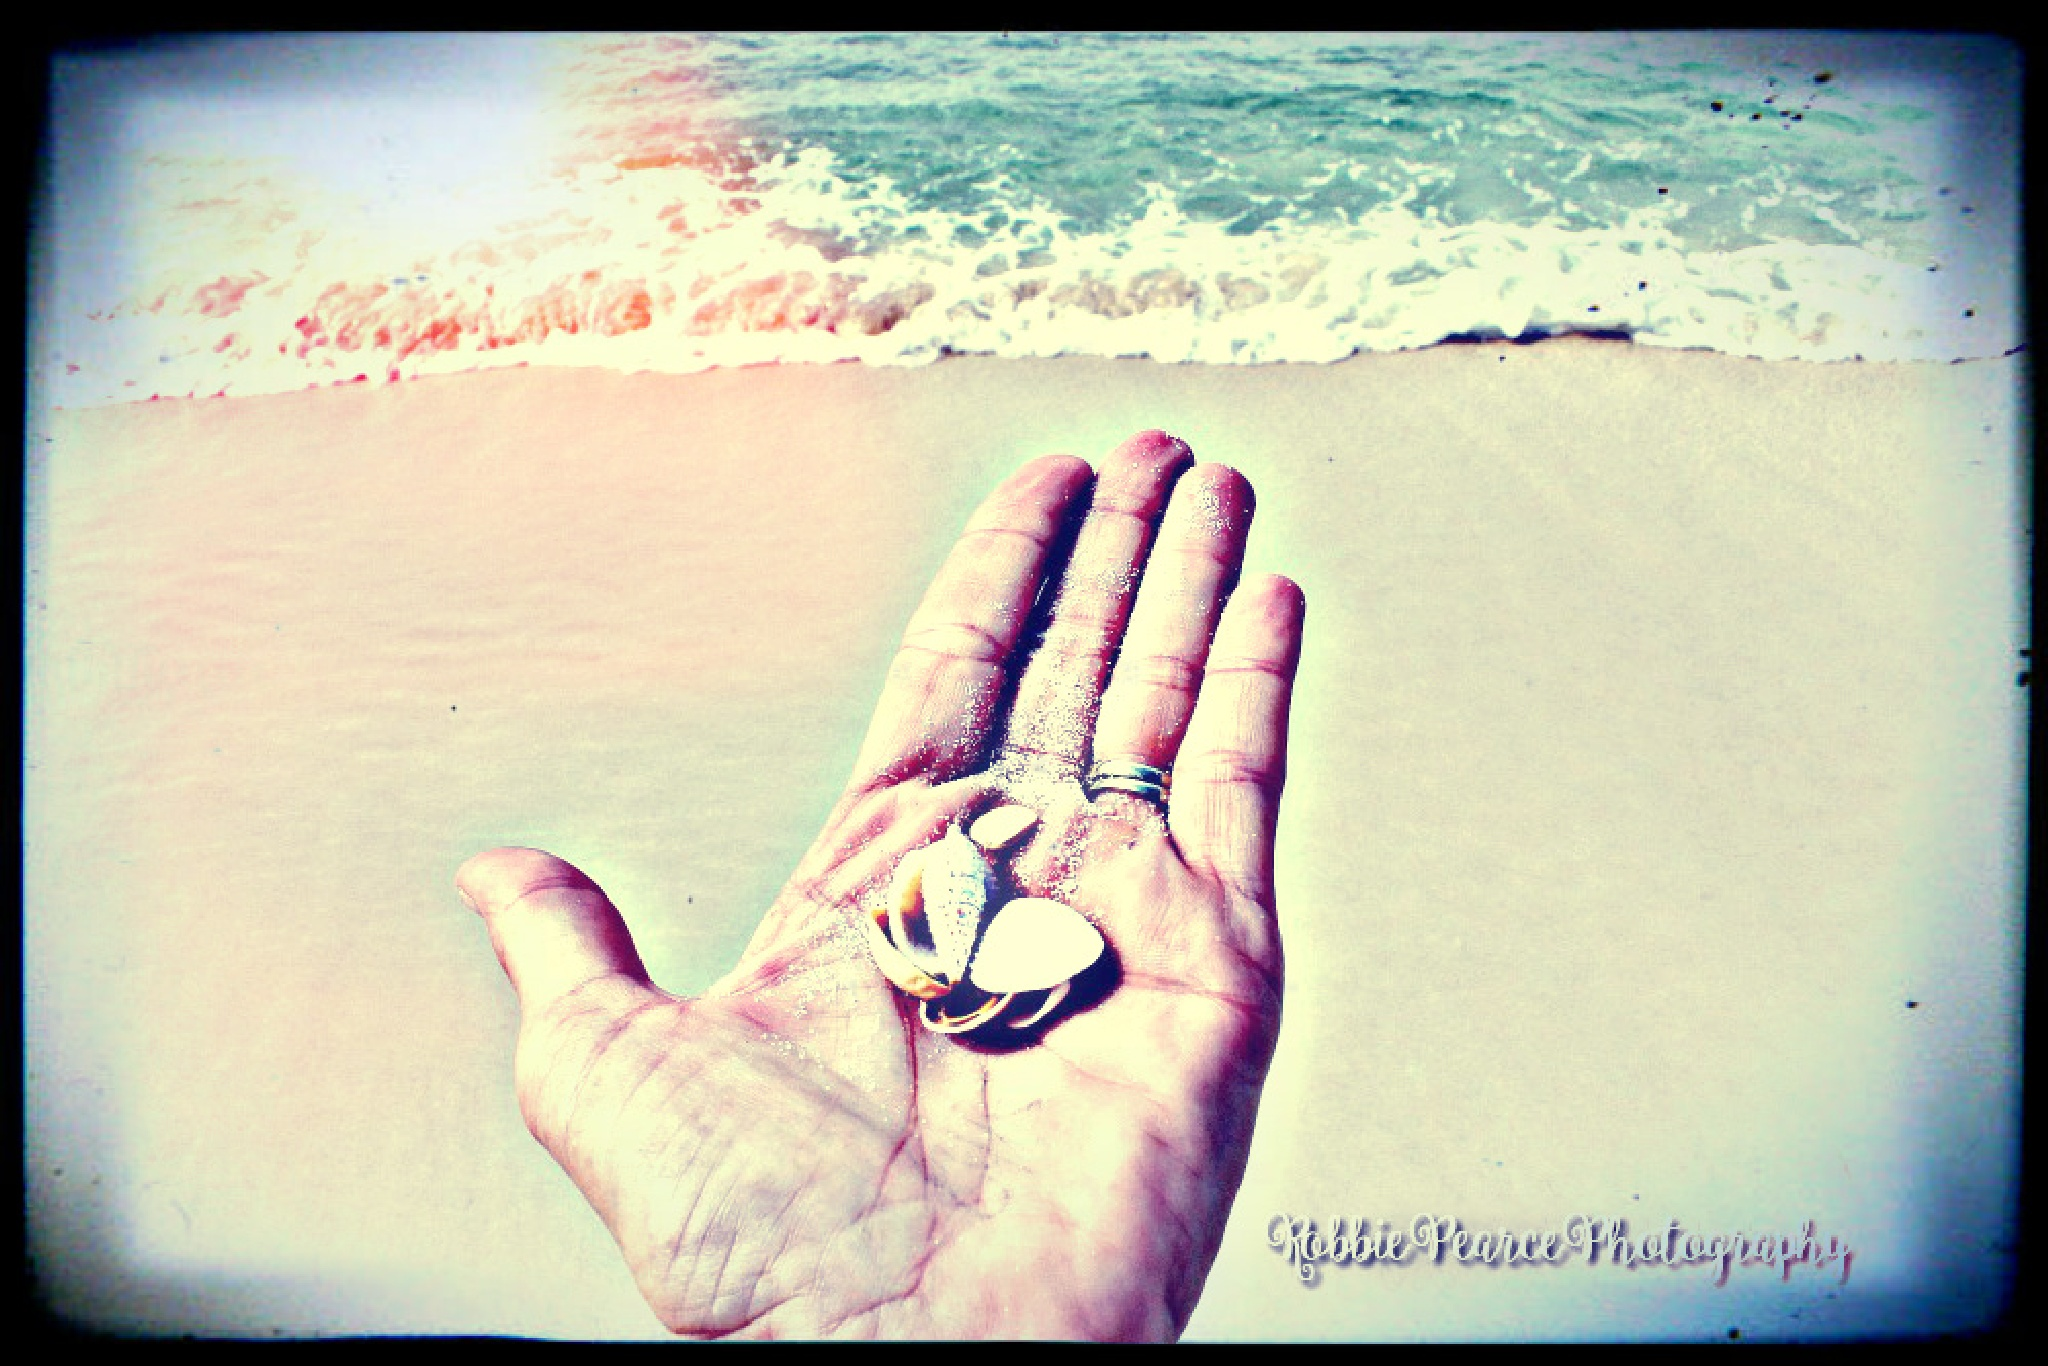 Shhh the ocean is calling the seashell.  by robbie.s.pearce